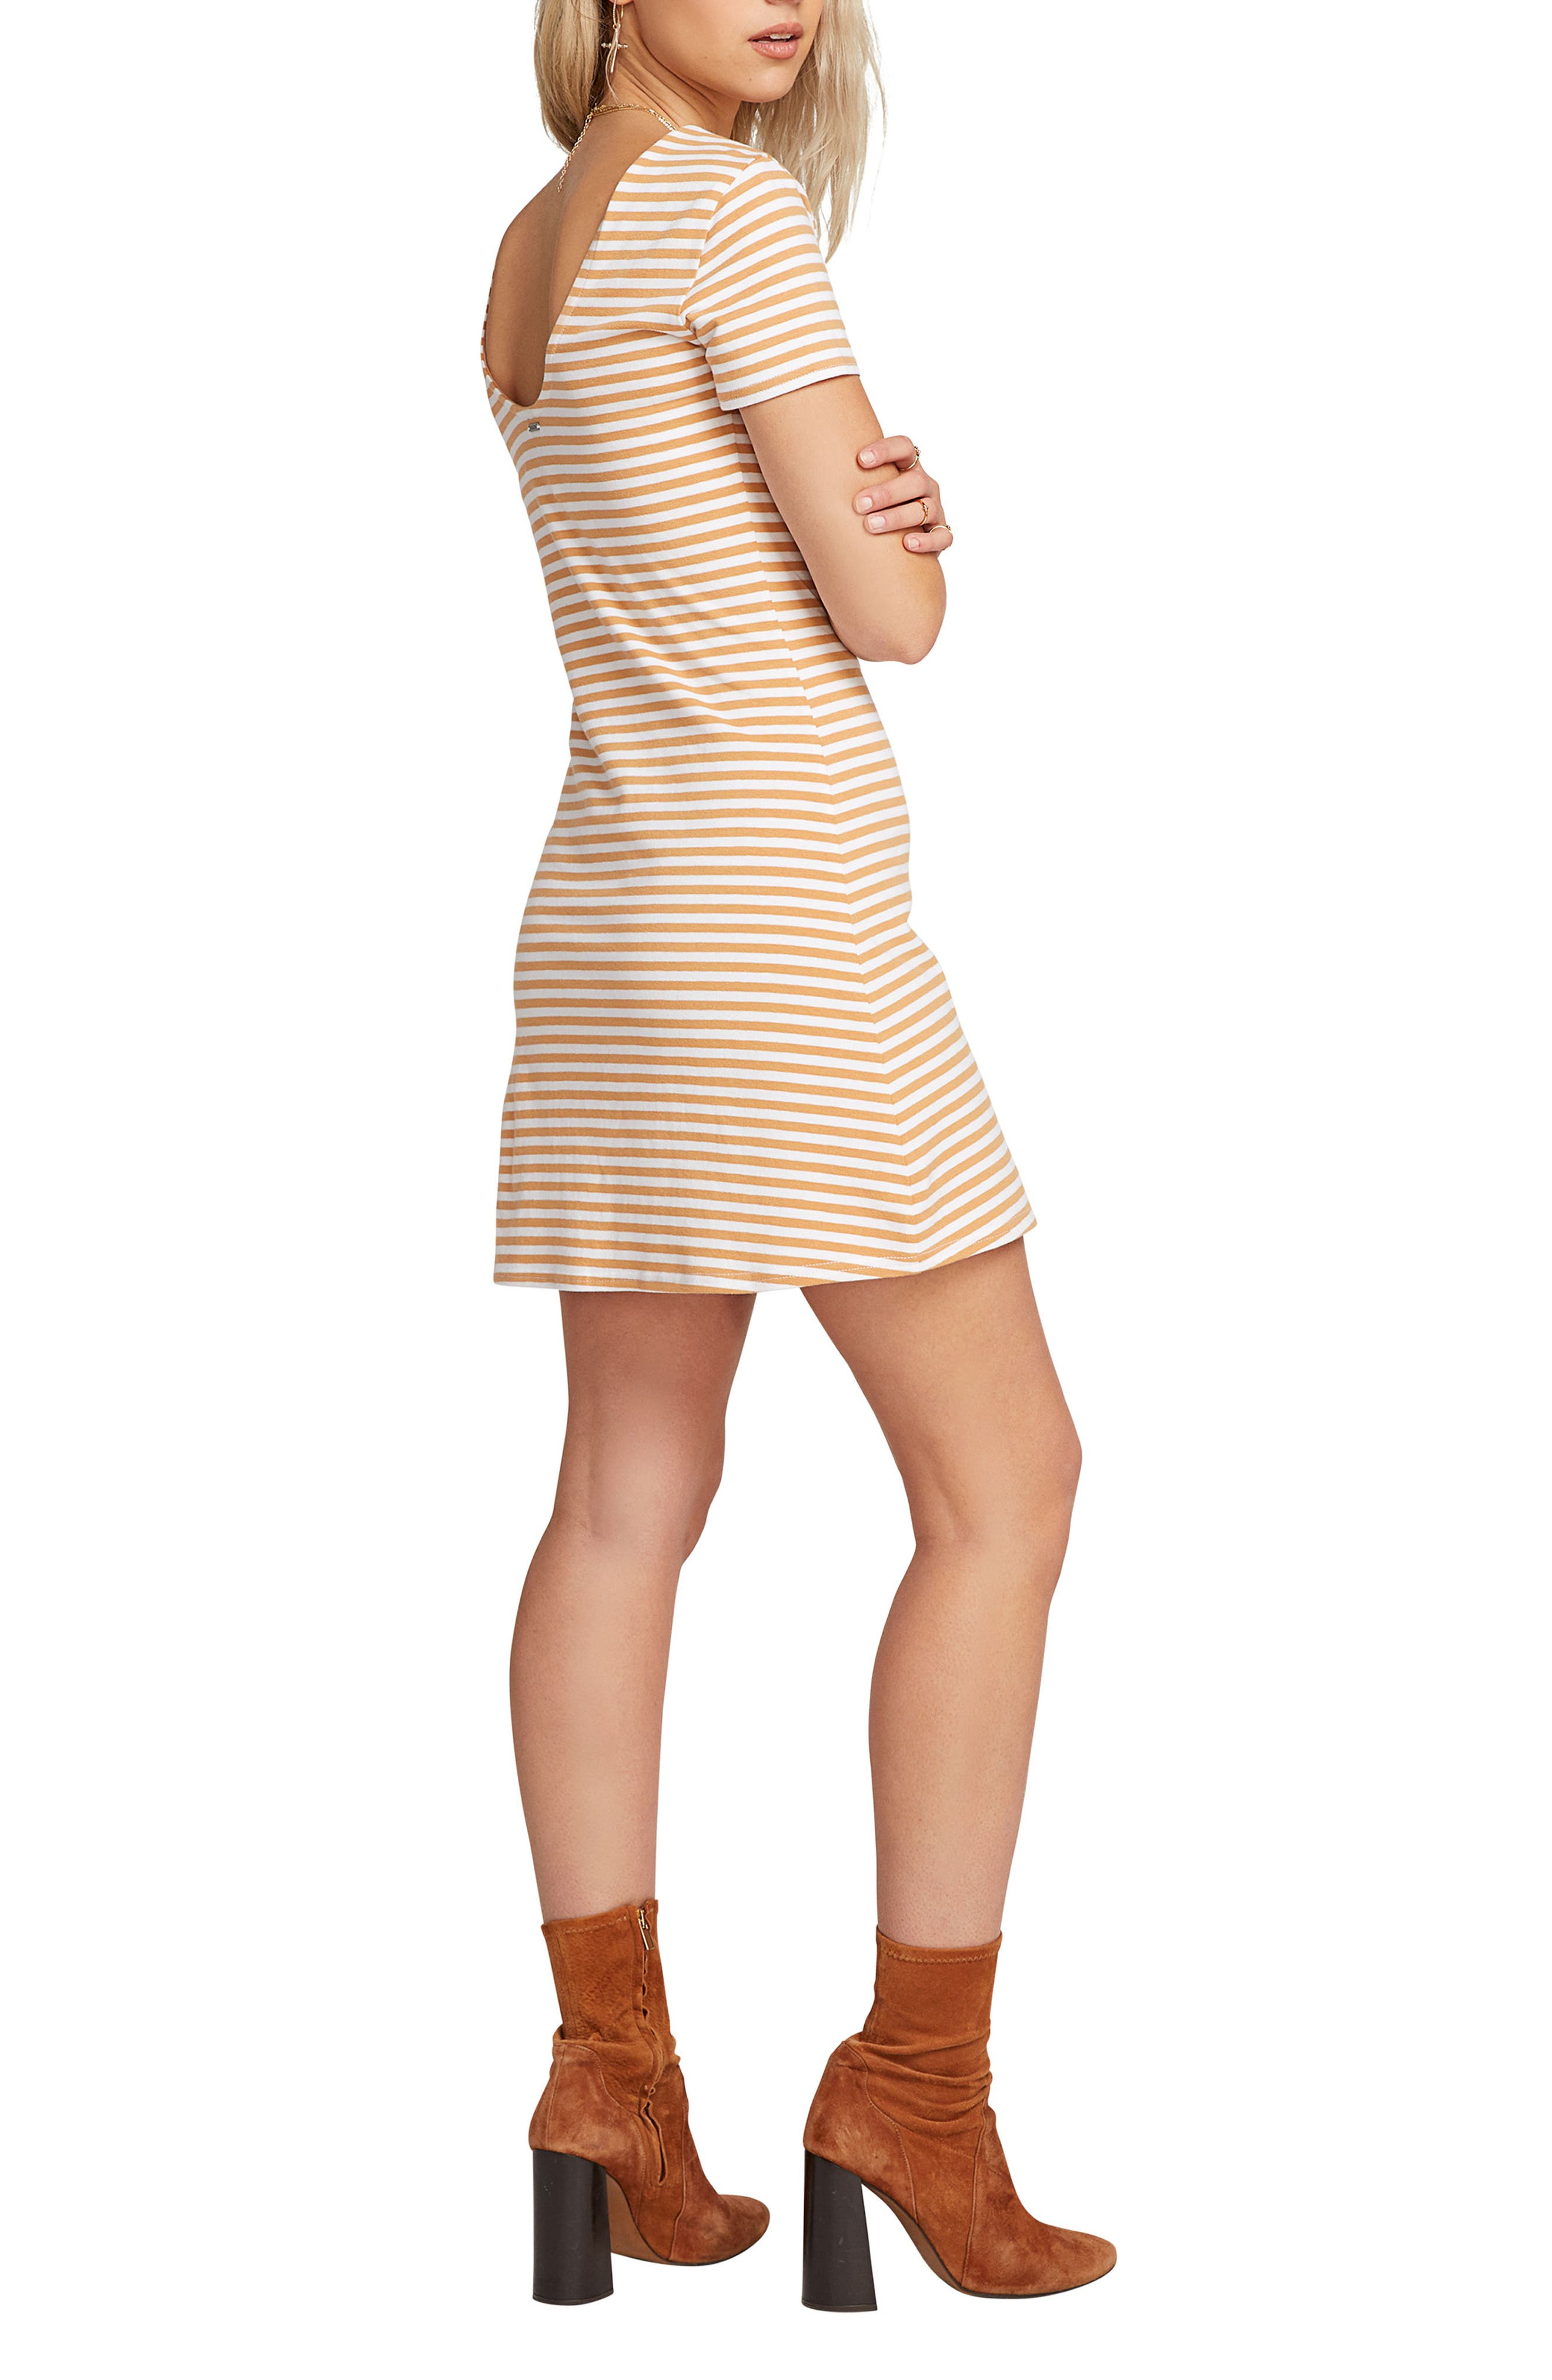 VOLCOM, Looking Out Stripe T-Shirt Dress, Alternate thumbnail 4, color, 250